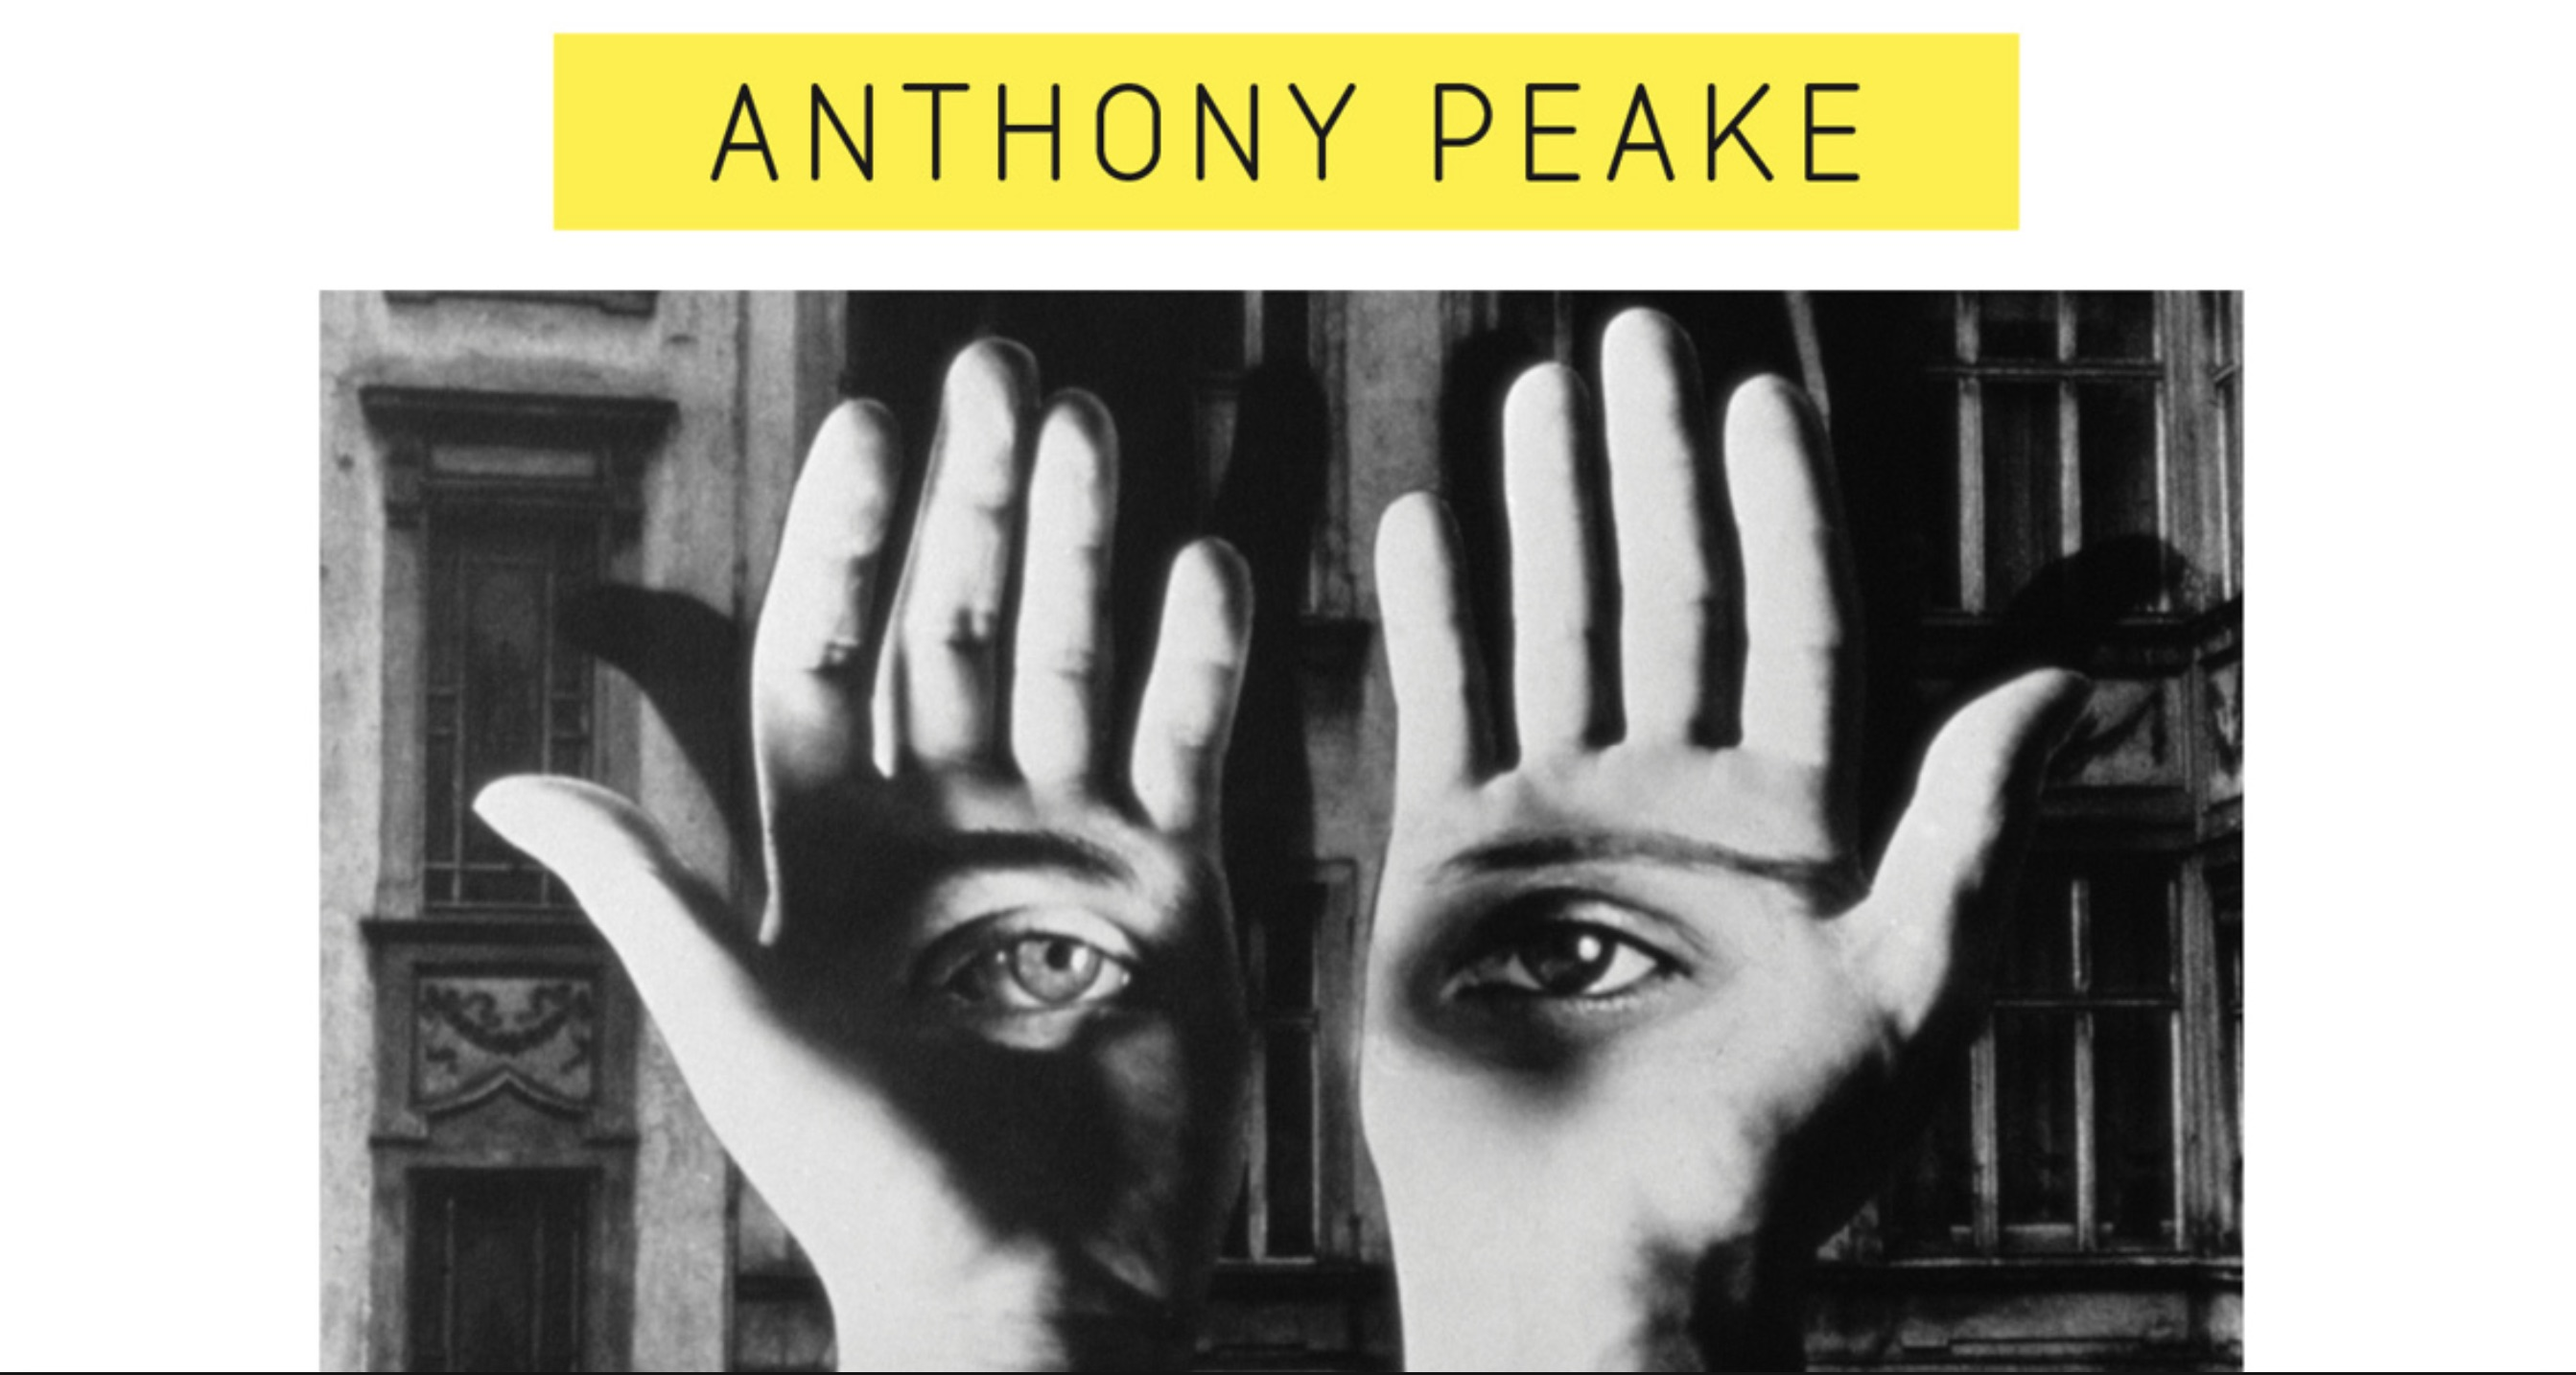 Anthony Peake Consciousness and Perception #64